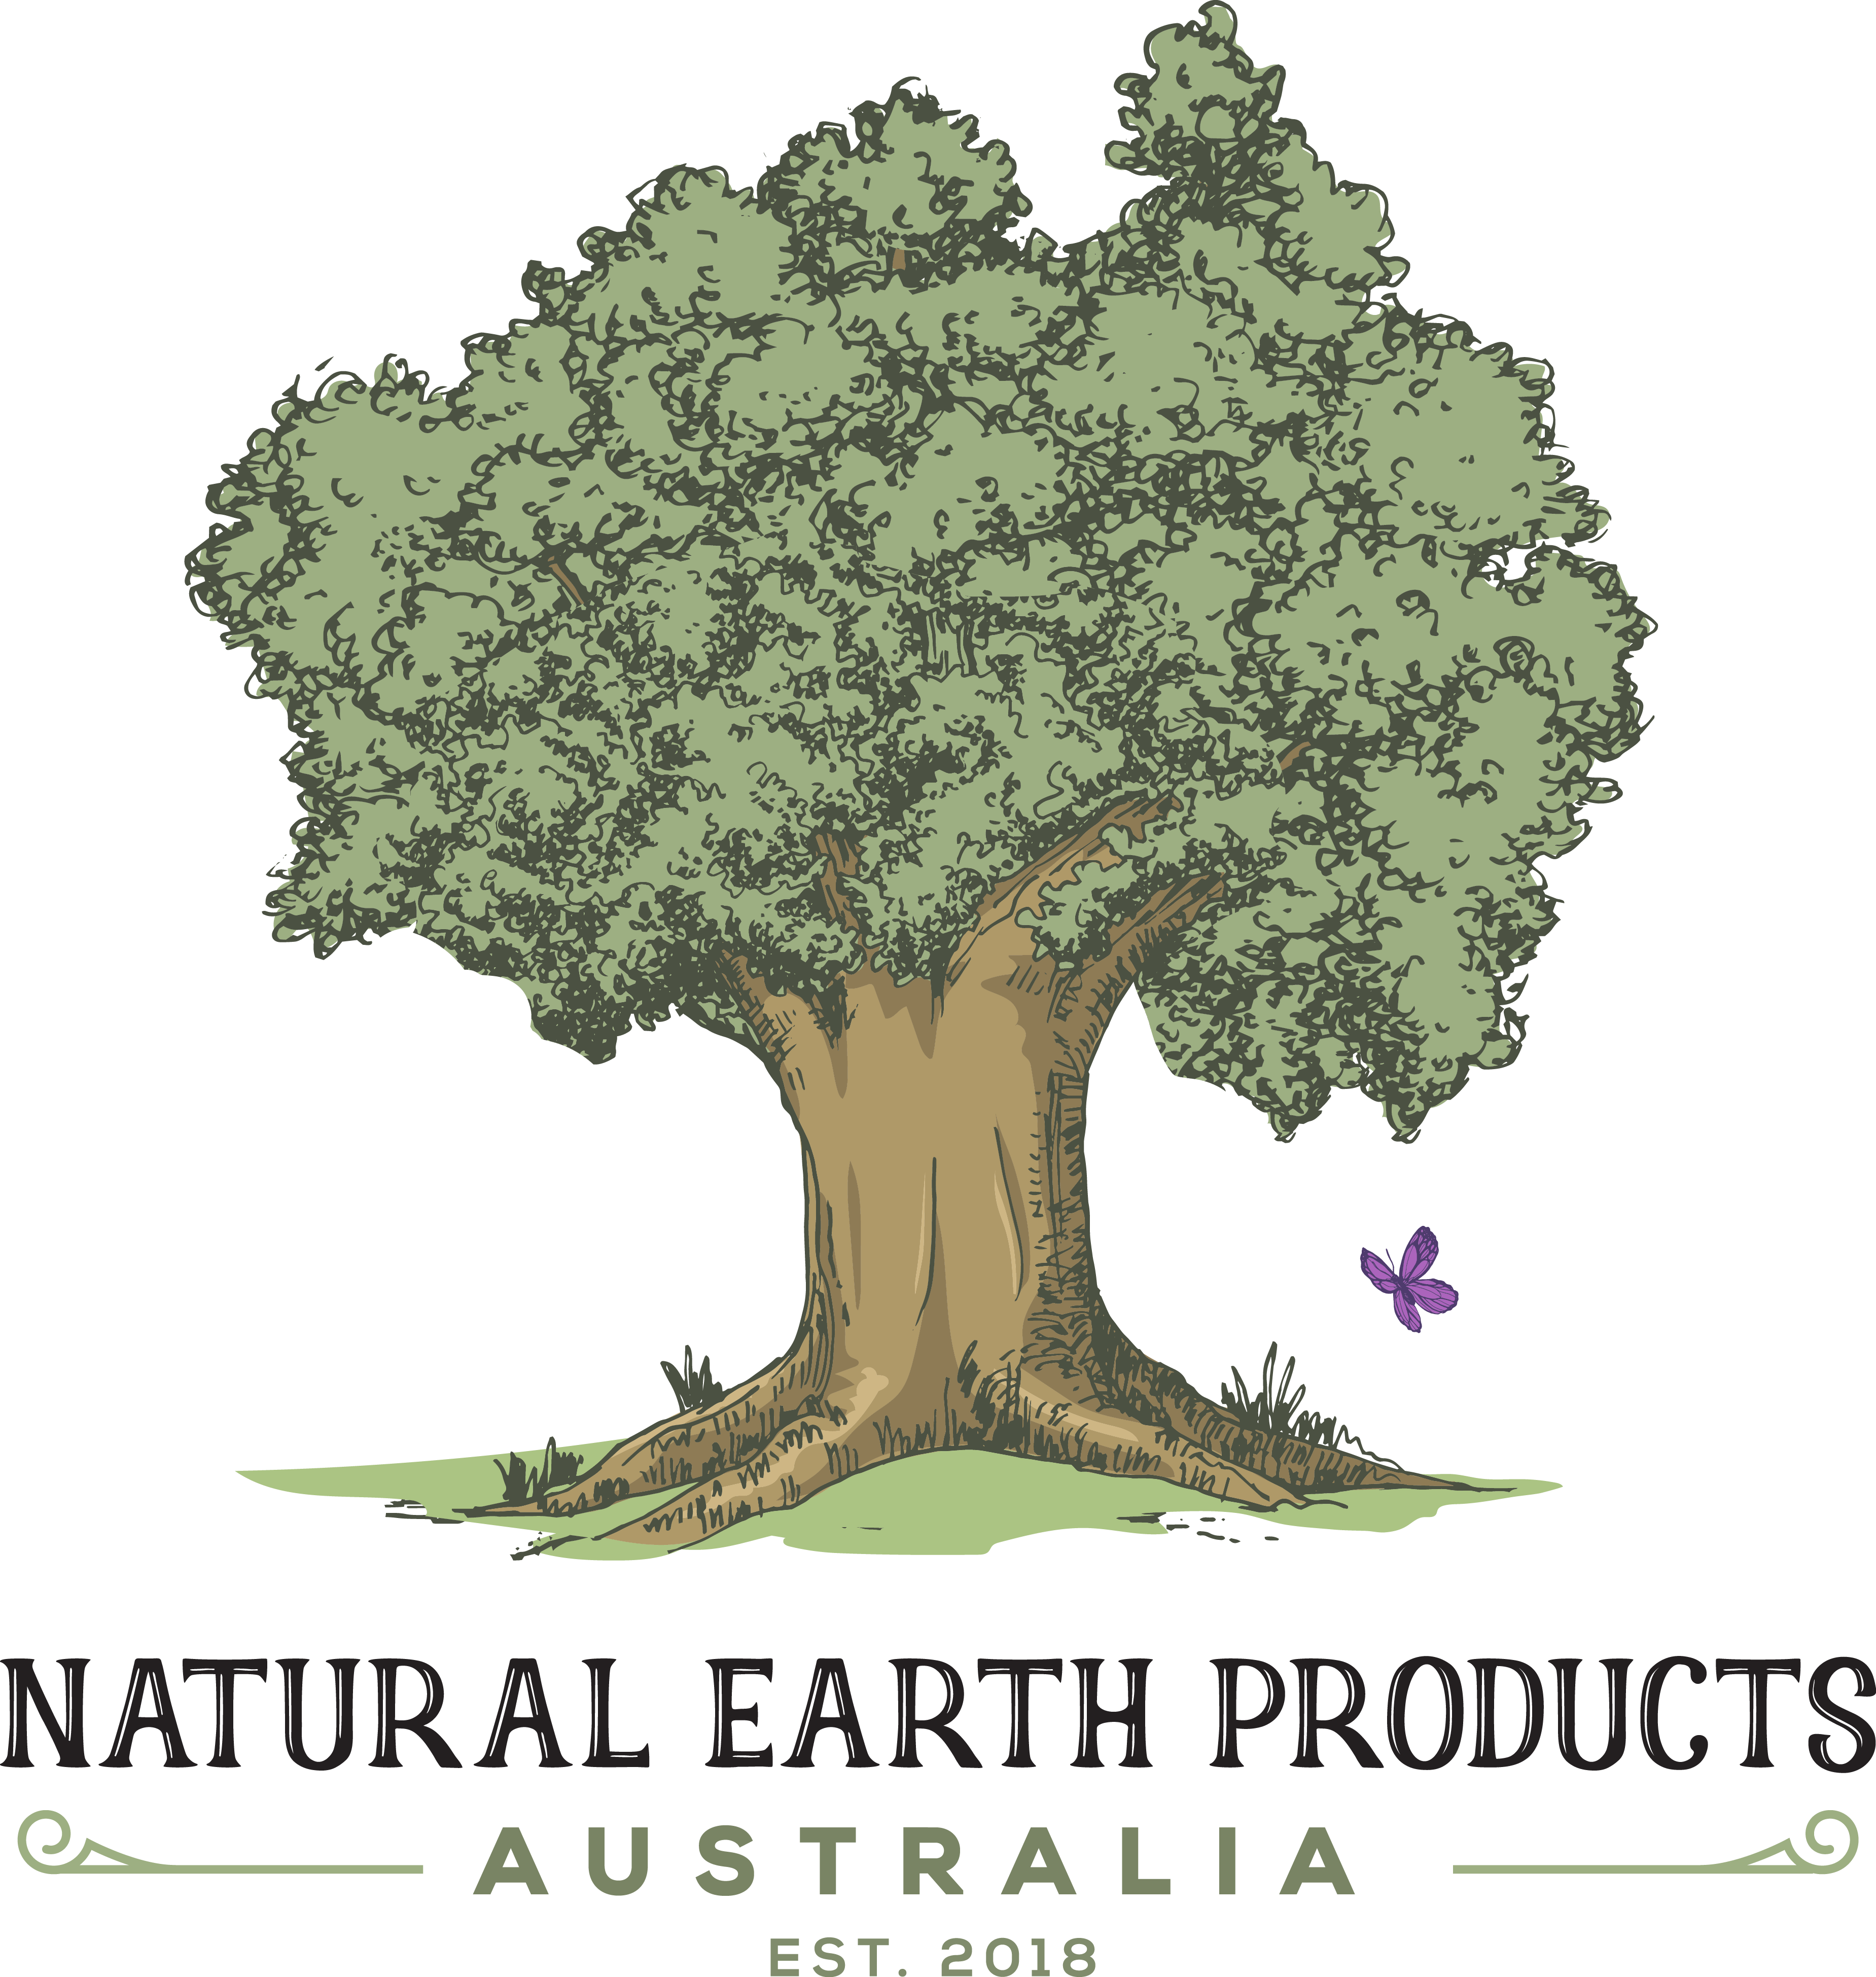 Natural Earth Products Australia